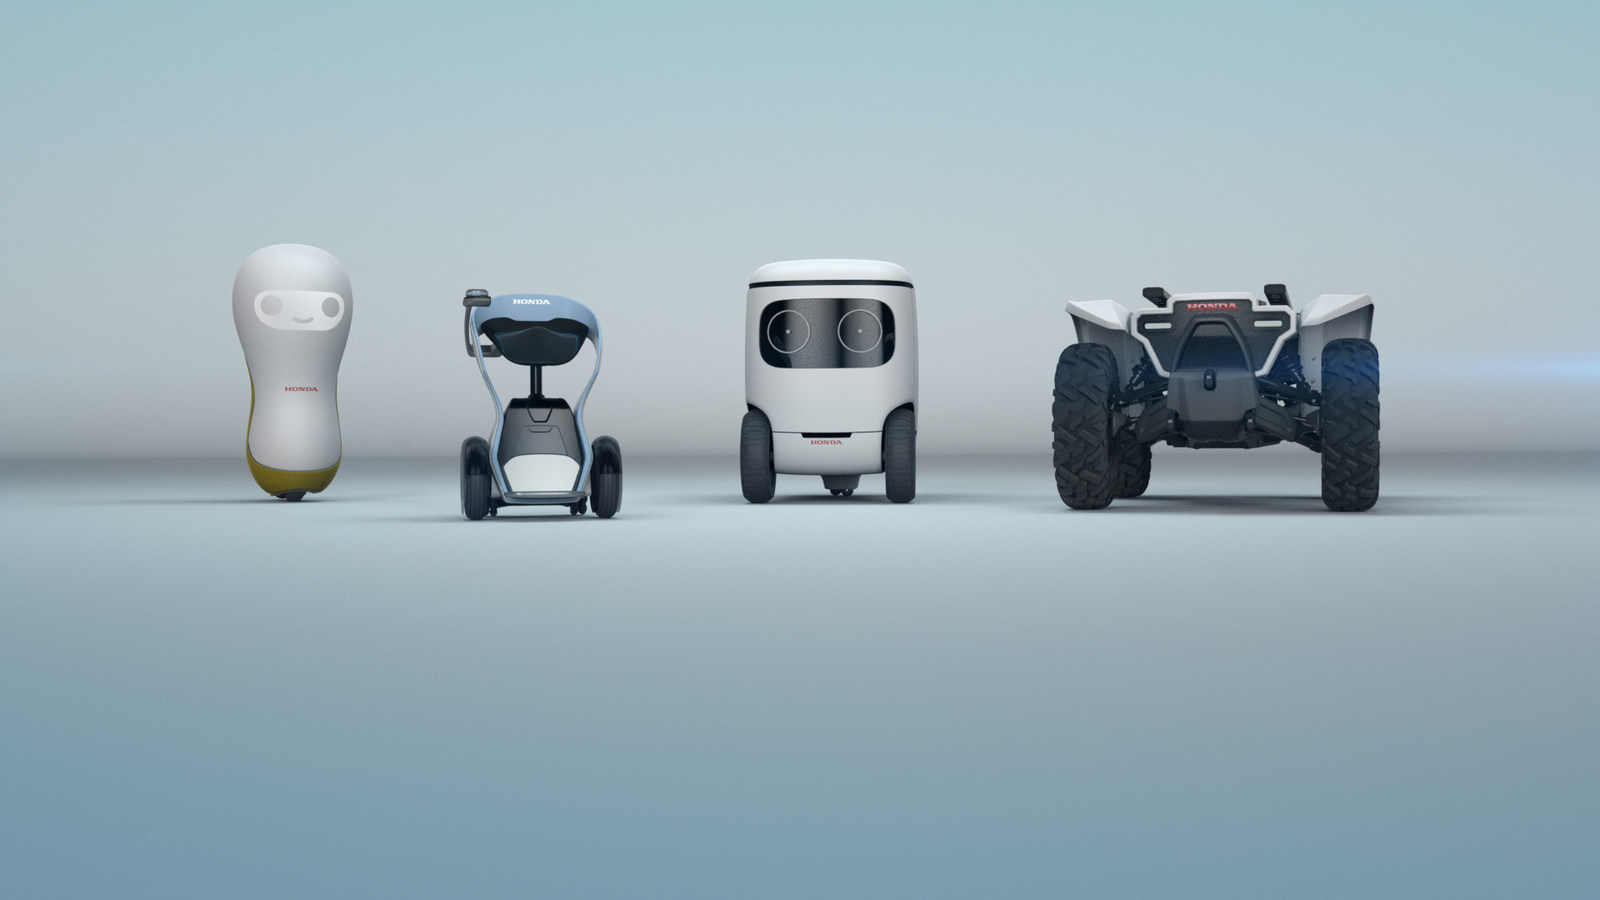 Honda Announces Four Robot Concepts With Friendly Faces